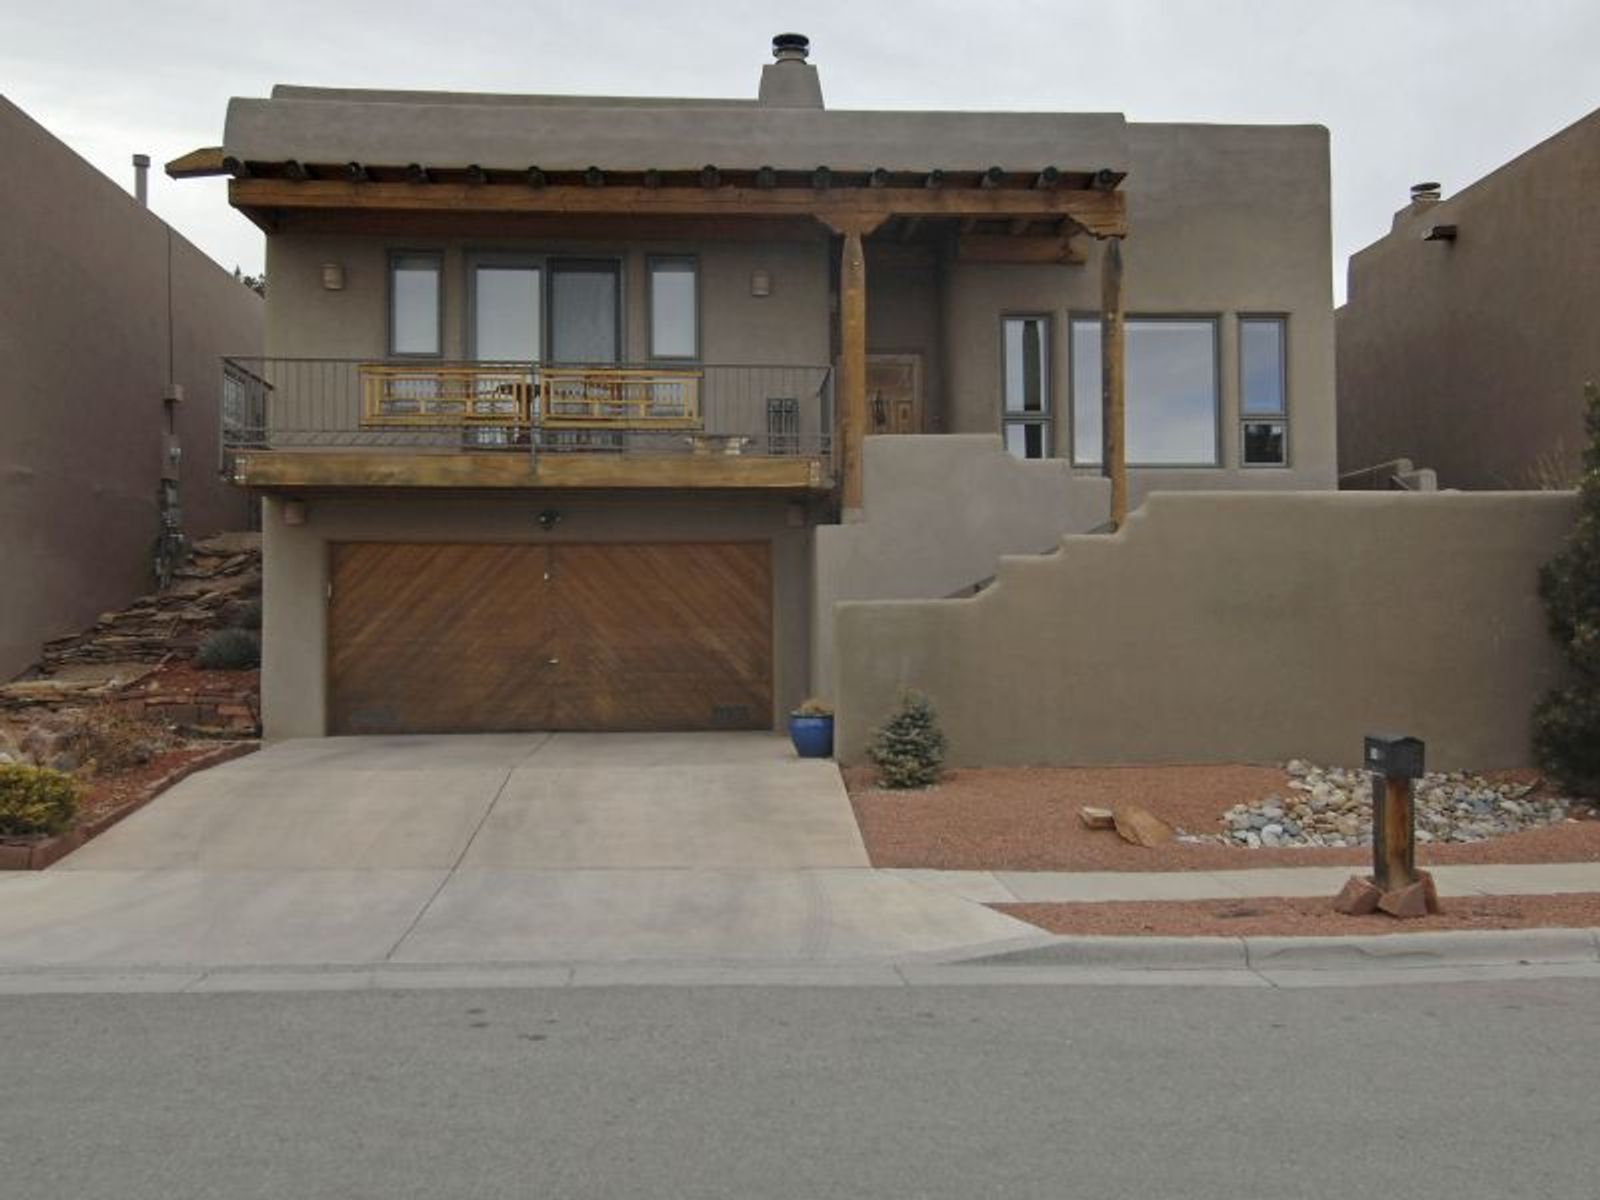 259 Vuelta Roble, Santa Fe NM Single Family Home - Santa Fe Real Estate